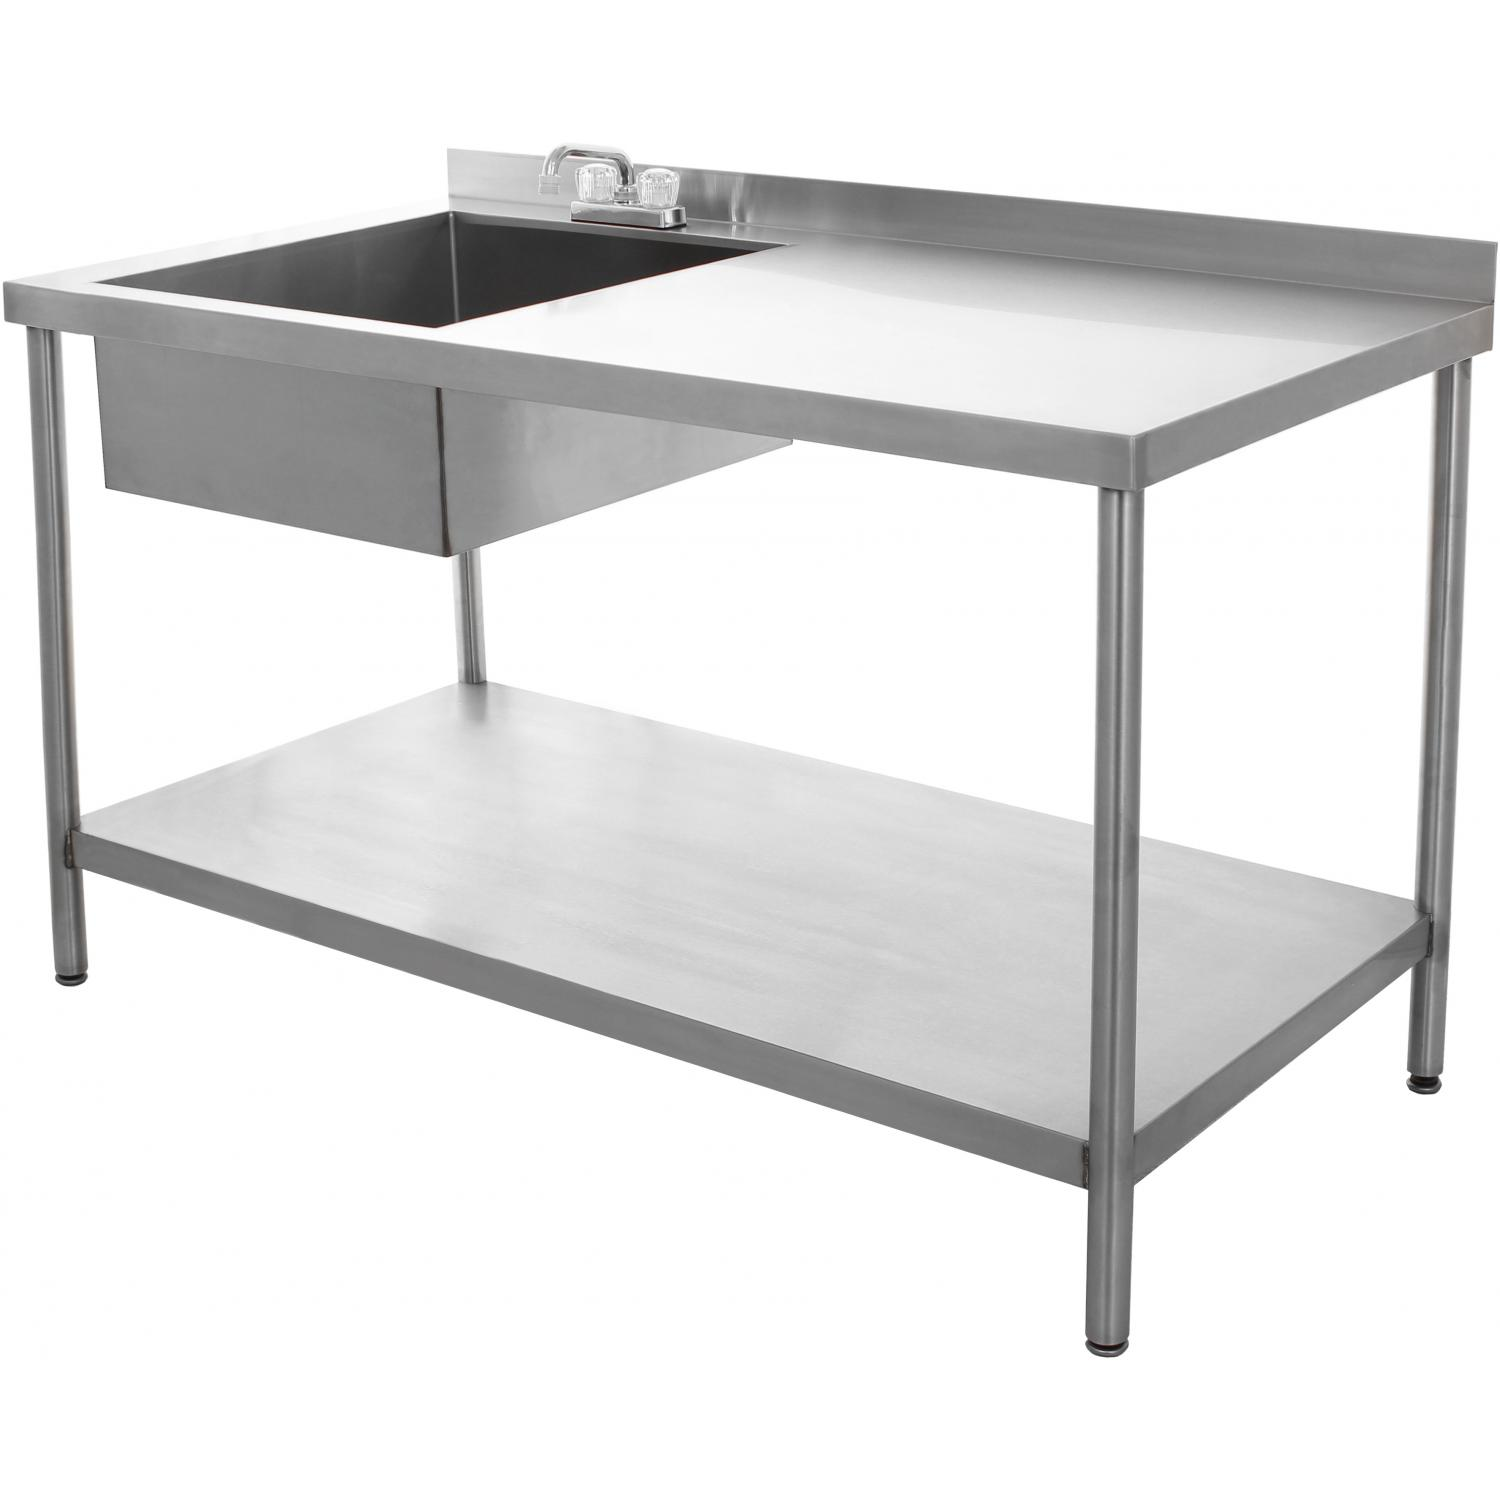 Picture of BBQGuys.com 30x60 Stainless Steel Utility Table With Sink And Faucet